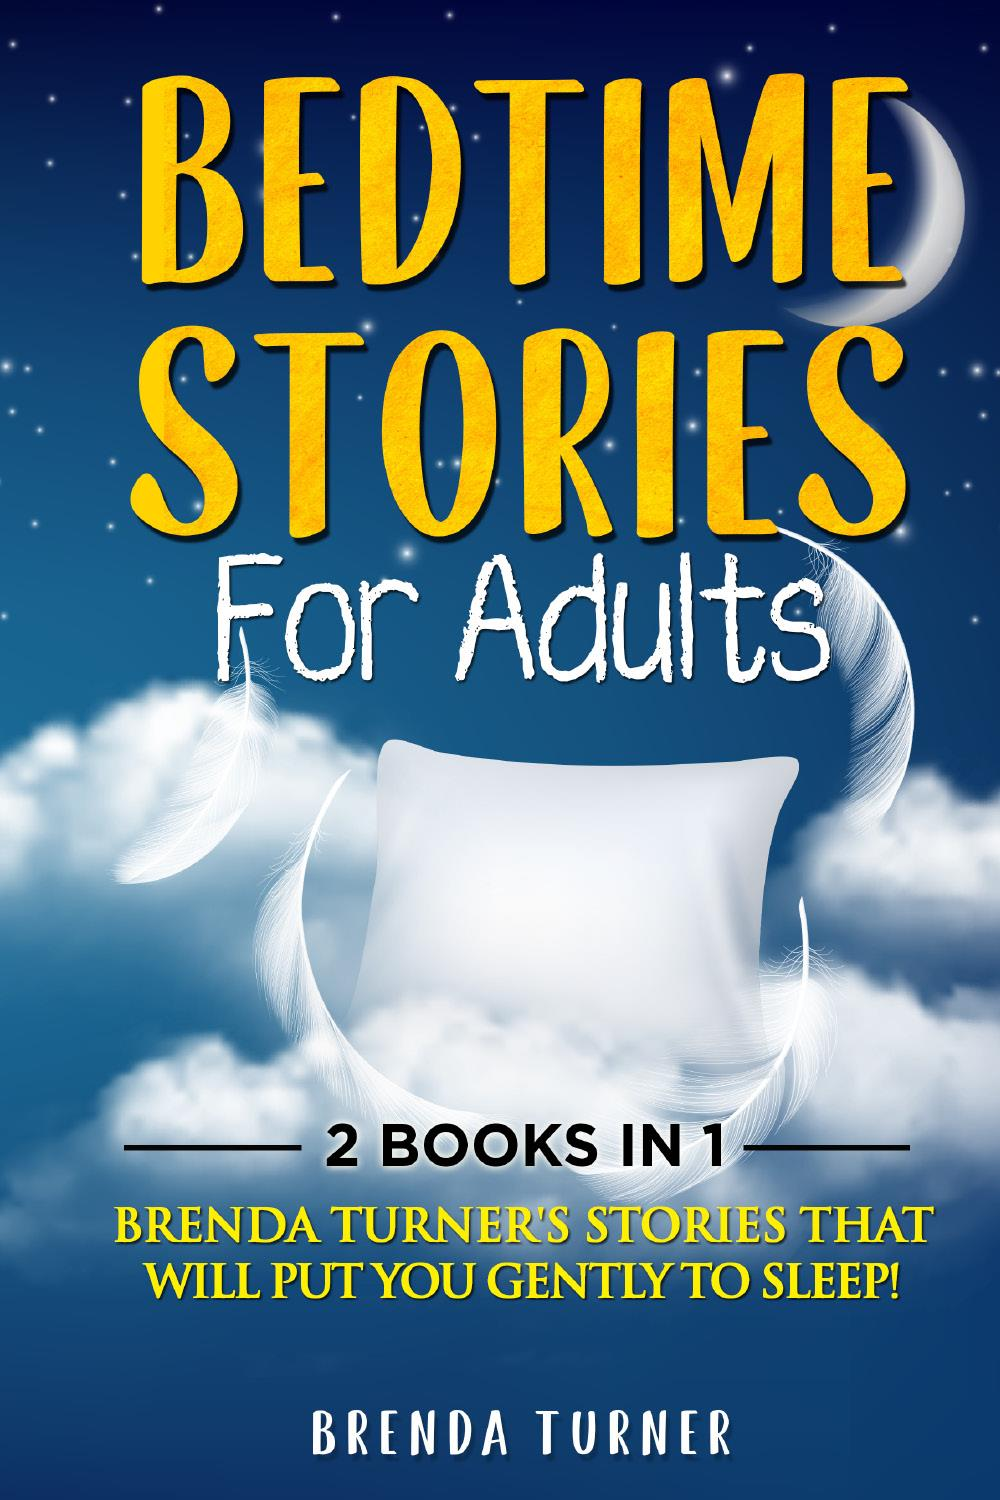 Bedtime Stories for Adults (2 Books in 1)